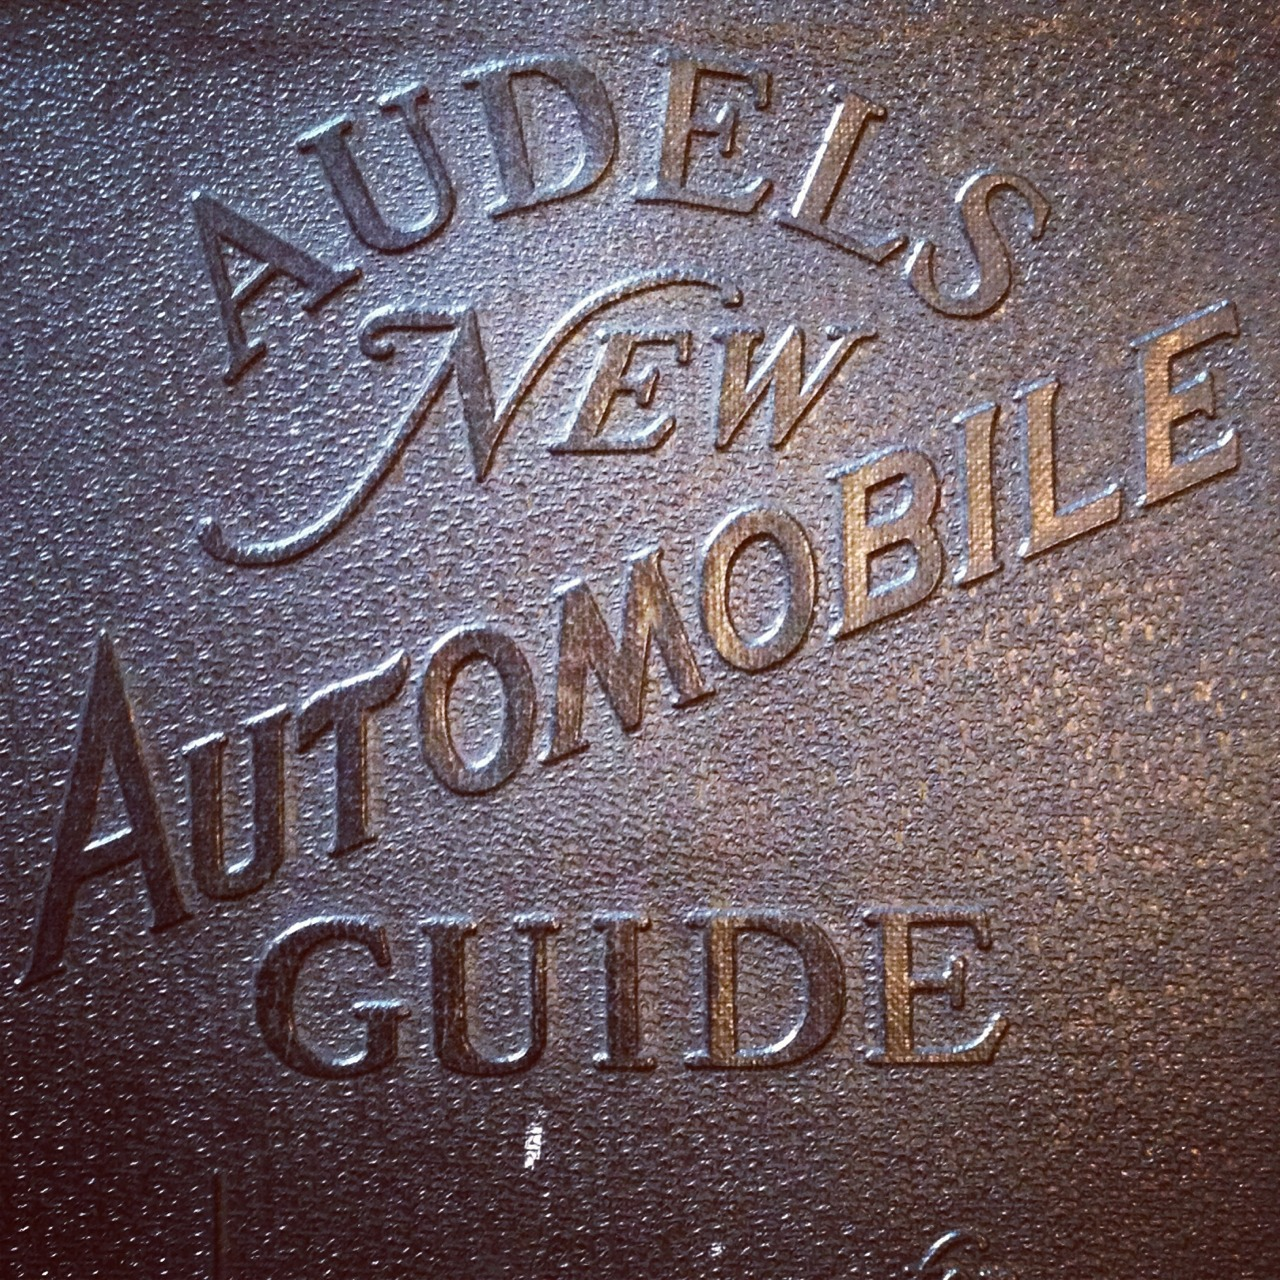 1938 auto mechanics guide